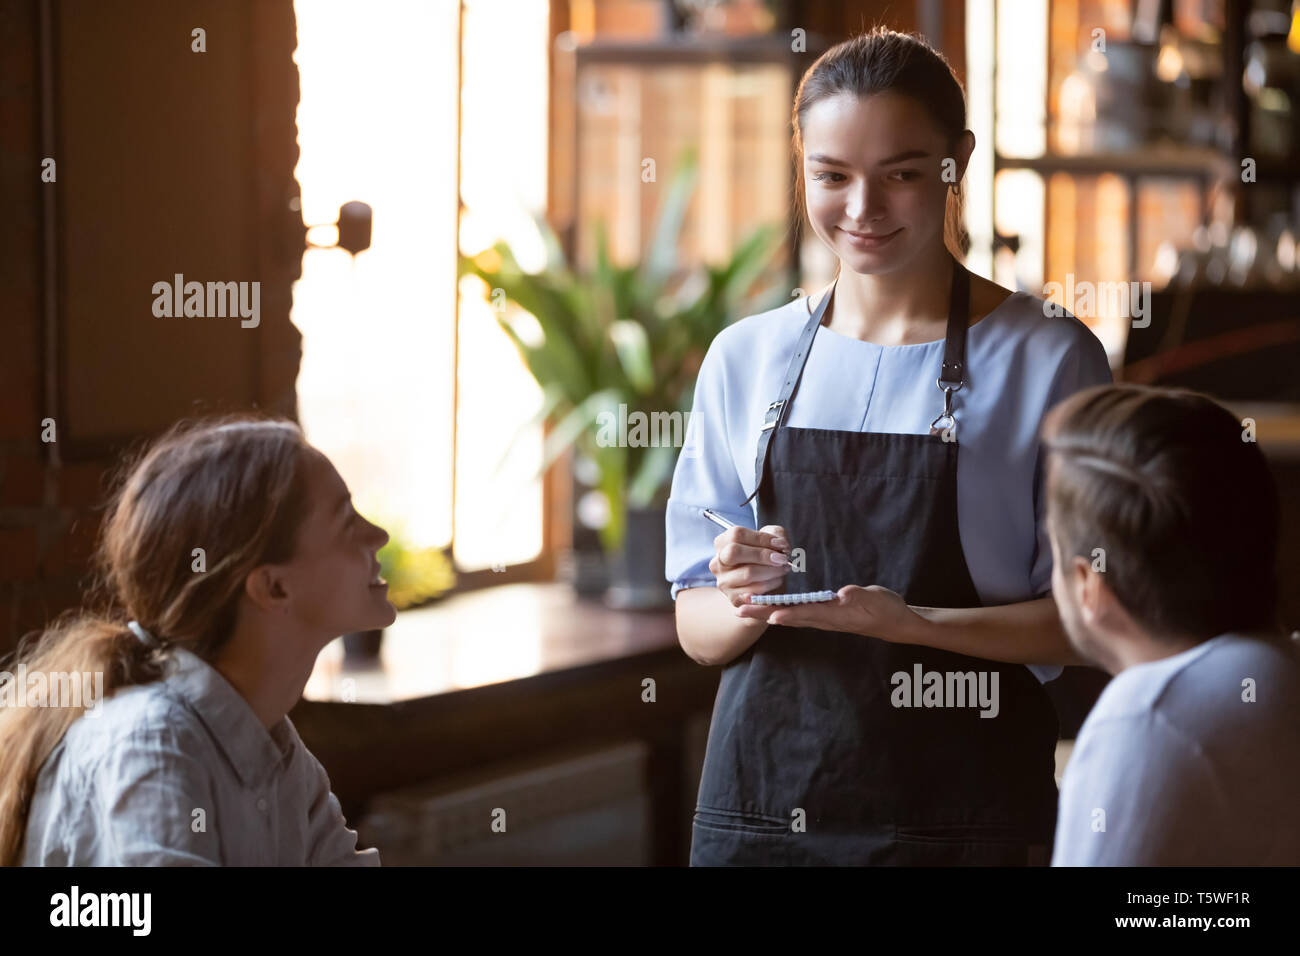 Smiling waitress serving a married couple take order - Stock Image